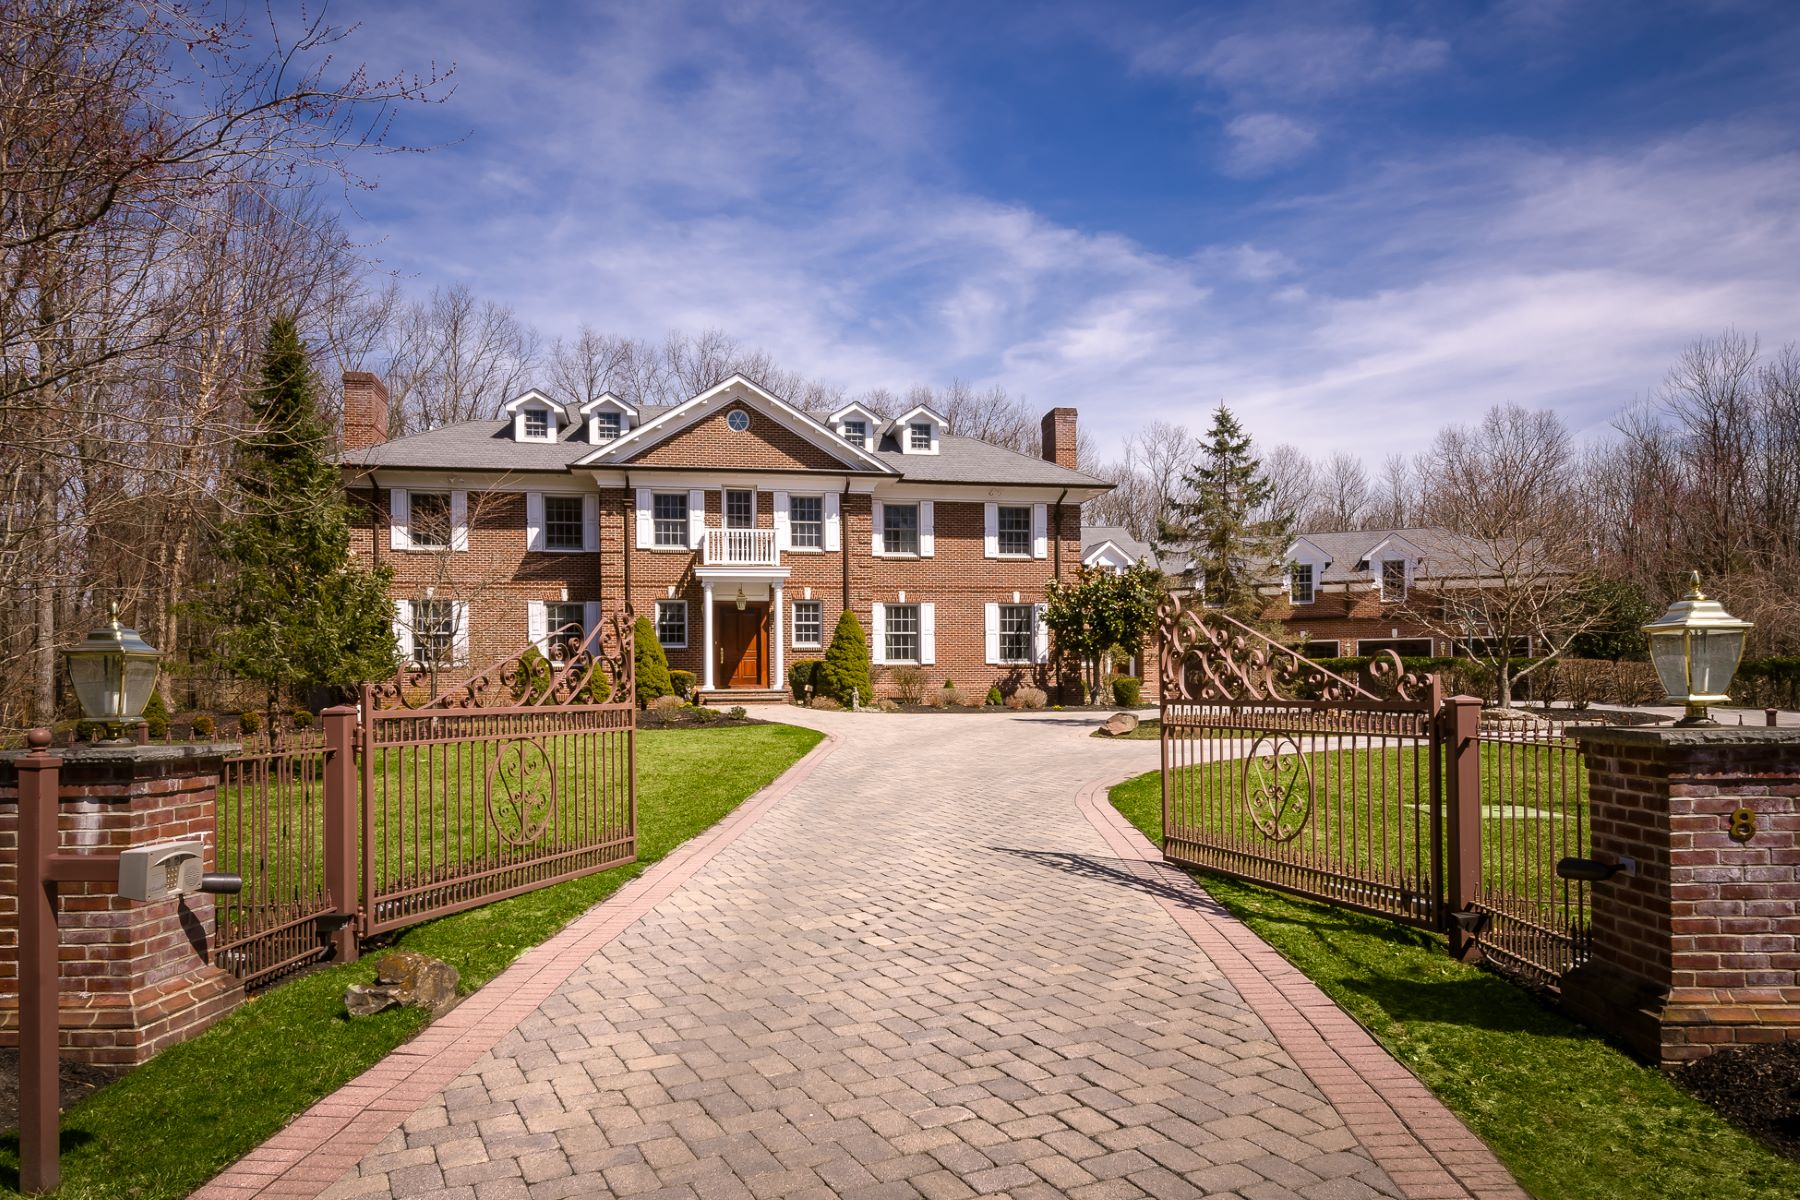 Property for Sale at Stonybrook Manor: Once-in-a-Lifetime Magnificence 8 Players Lane, Princeton, New Jersey 08540 United States